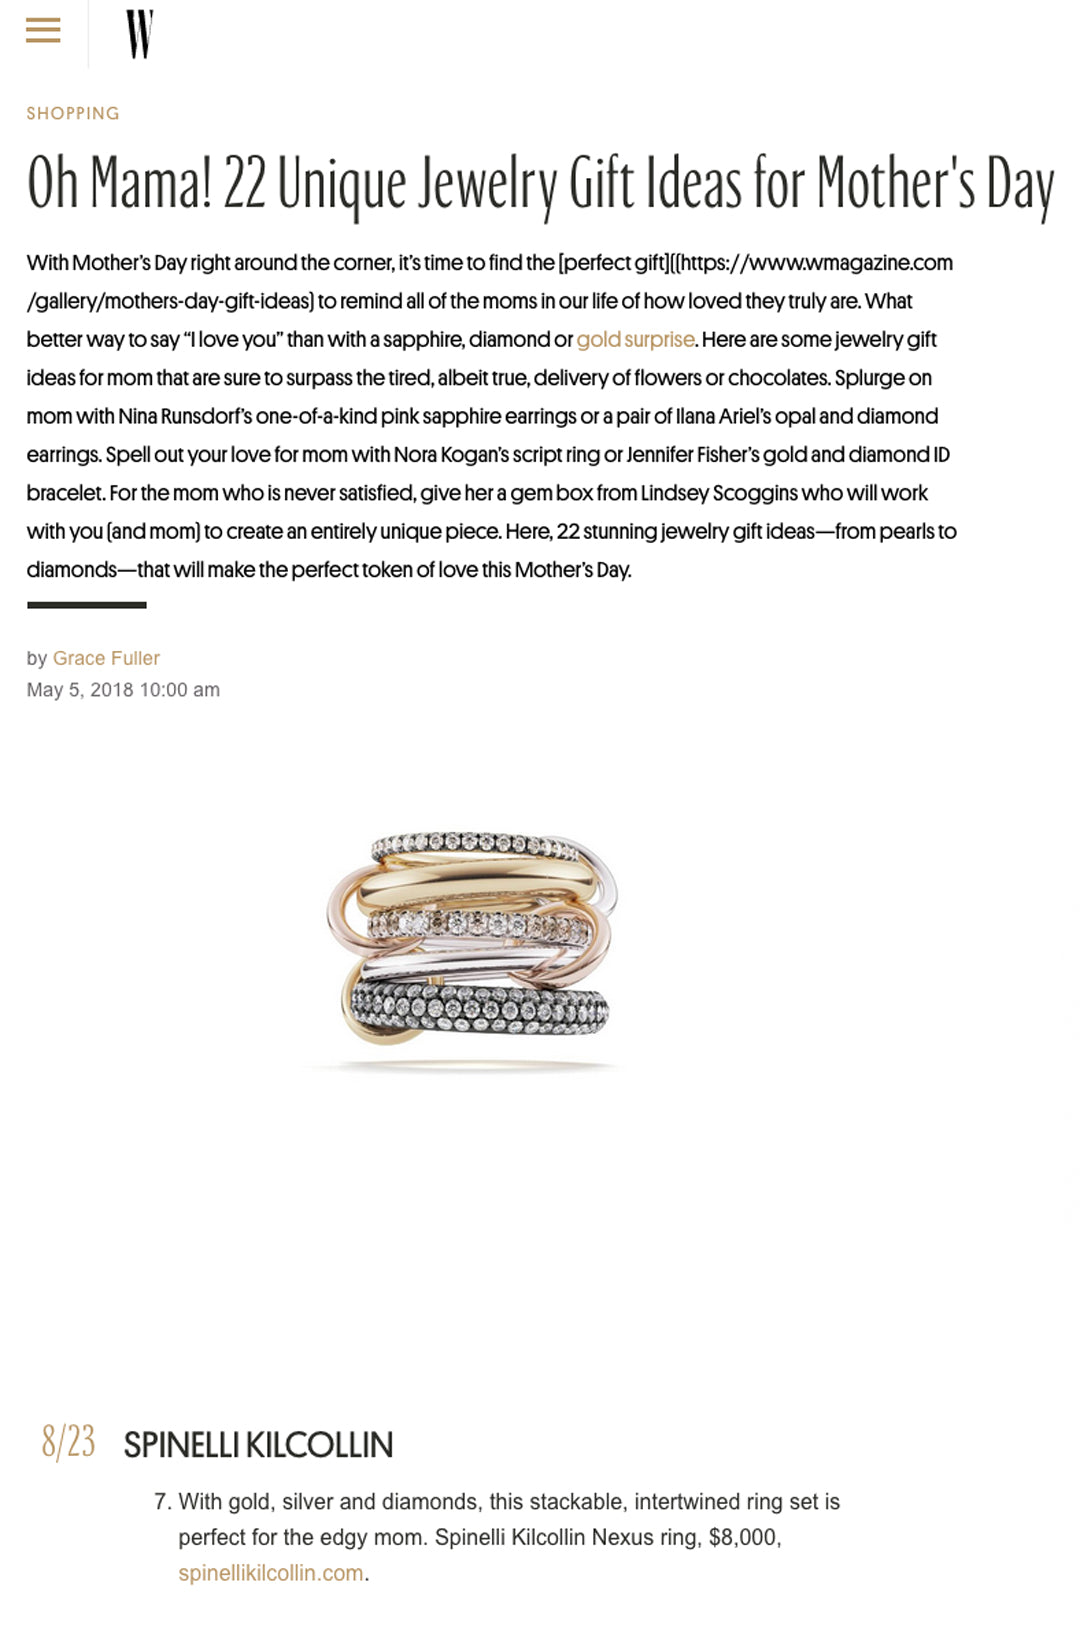 w magazine spinelli kilcollin linked ring nexus luxury jewelry